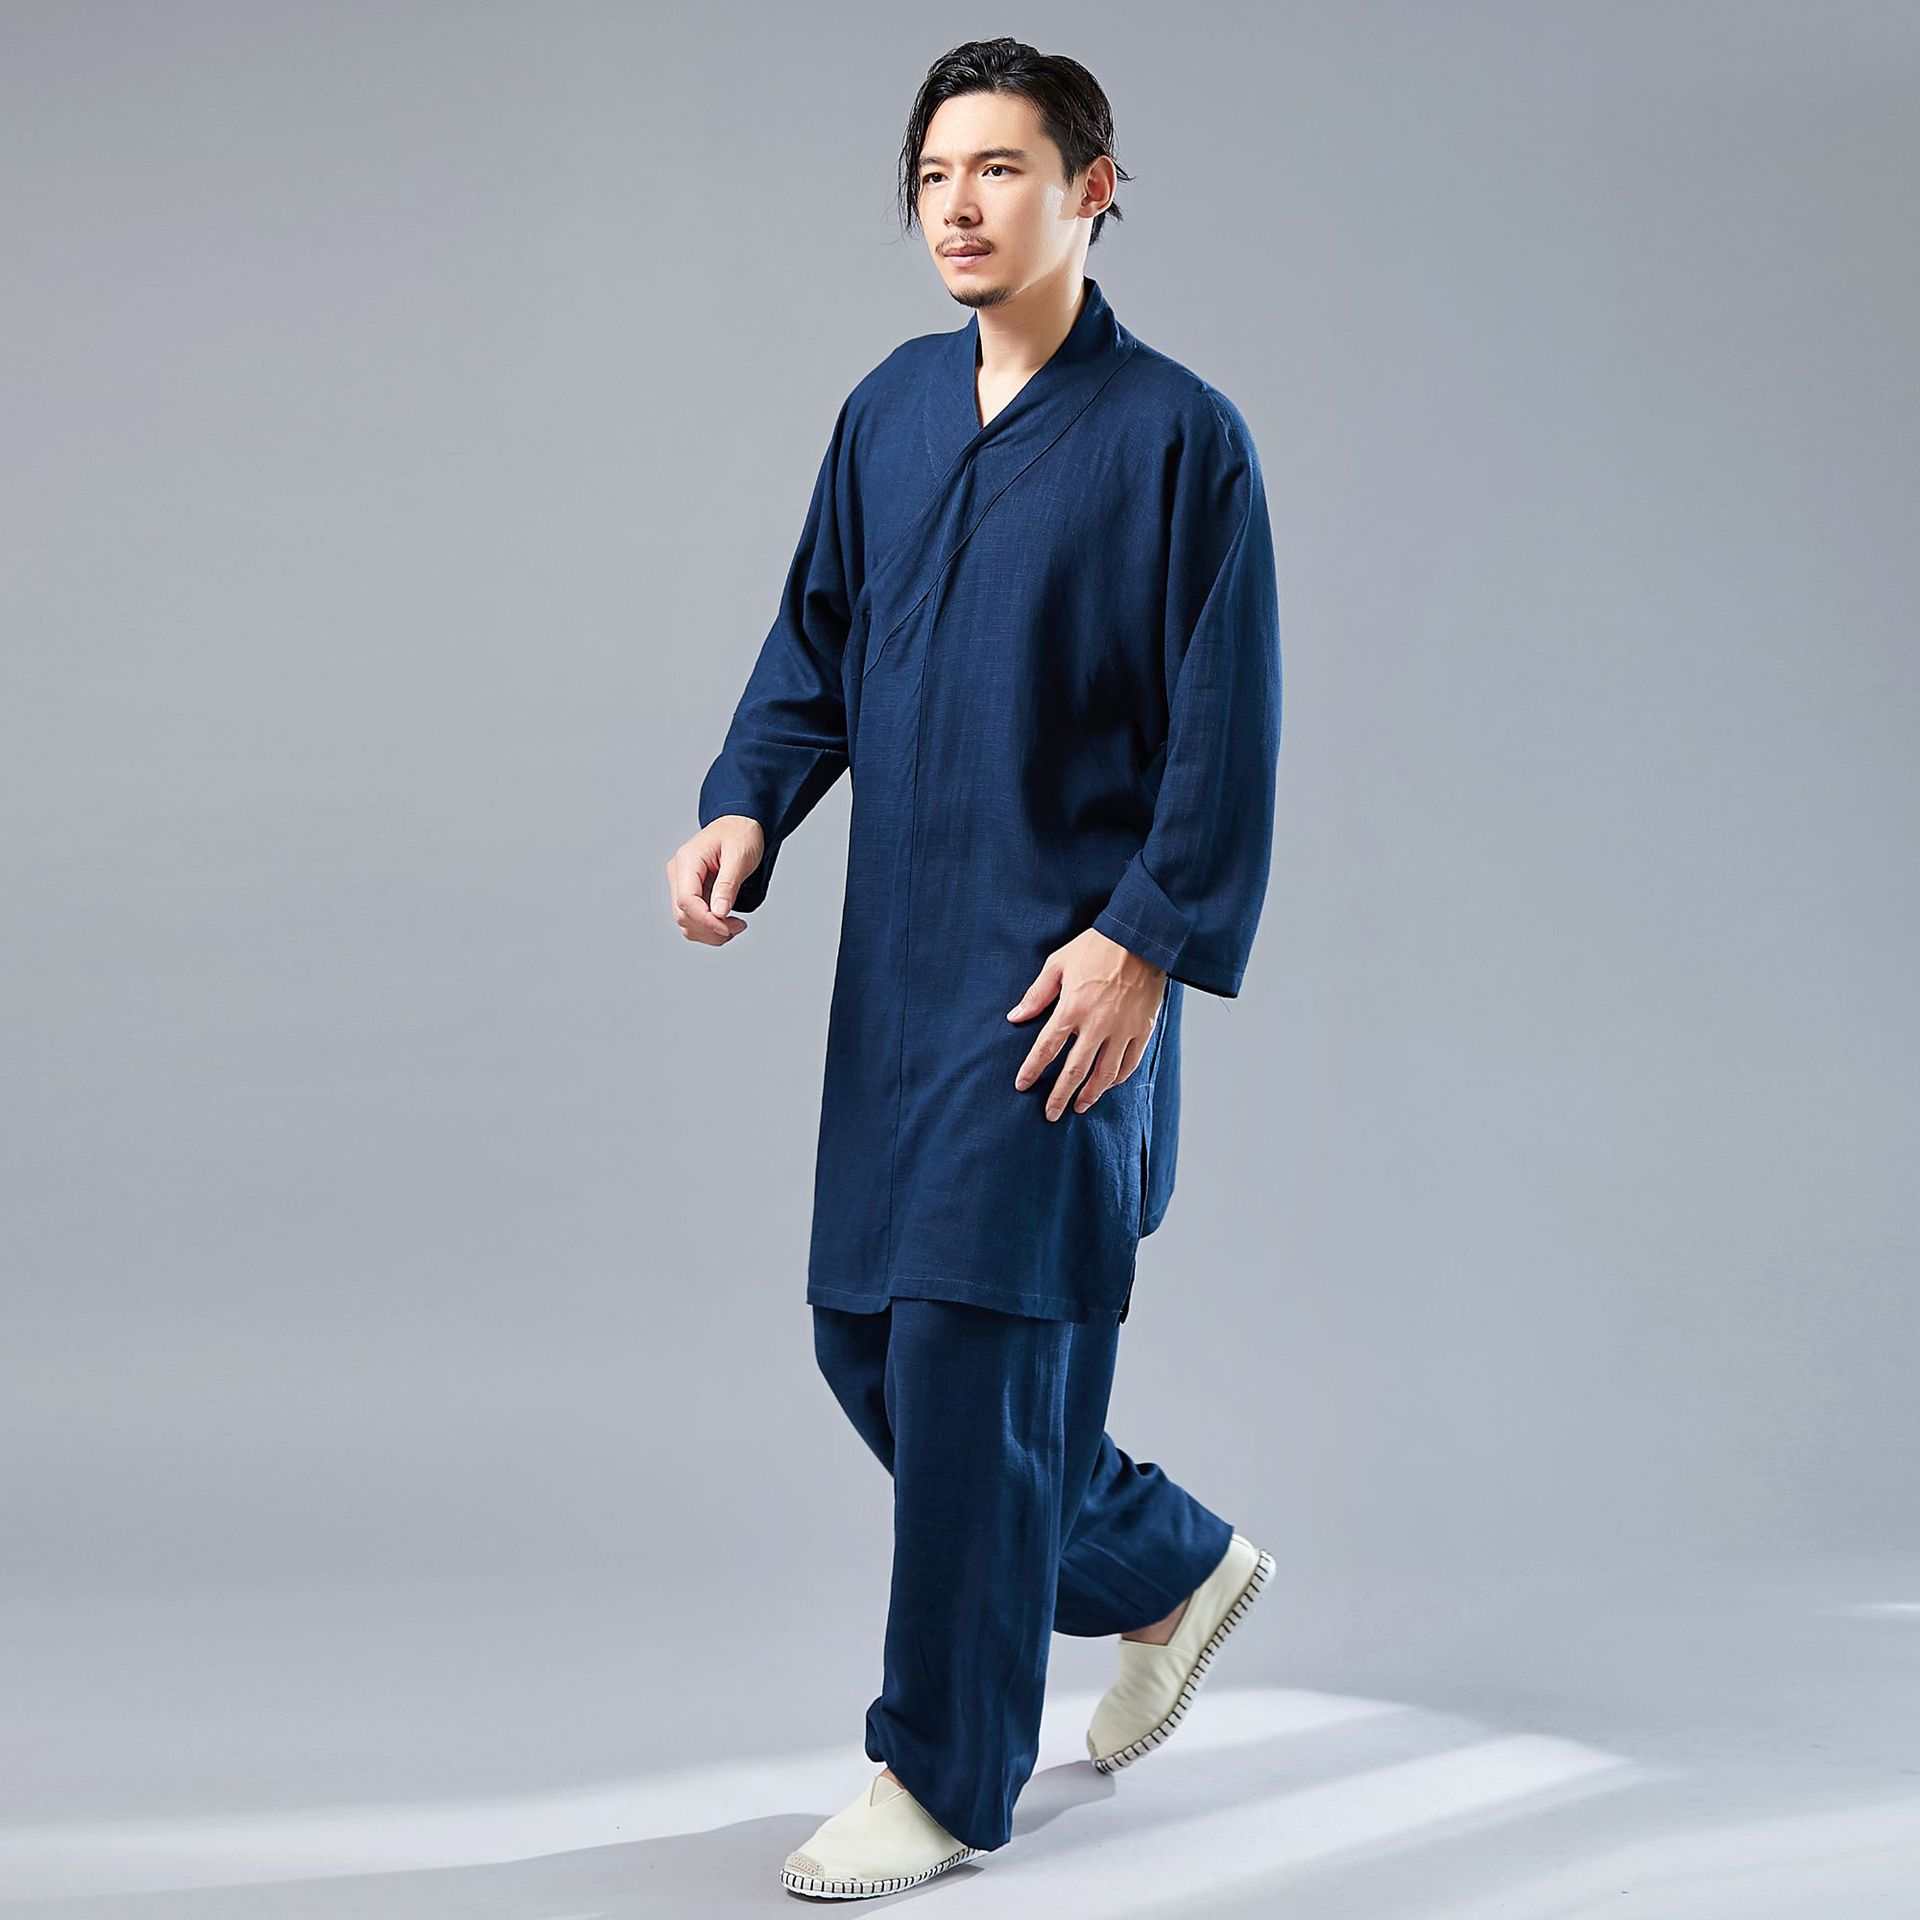 2019 Autumn New Products Flax Solid Color GI Taekwondo Long Sleeve Training Suit Loose-Fit Leisure Suit Men's Tai Chi Clothing